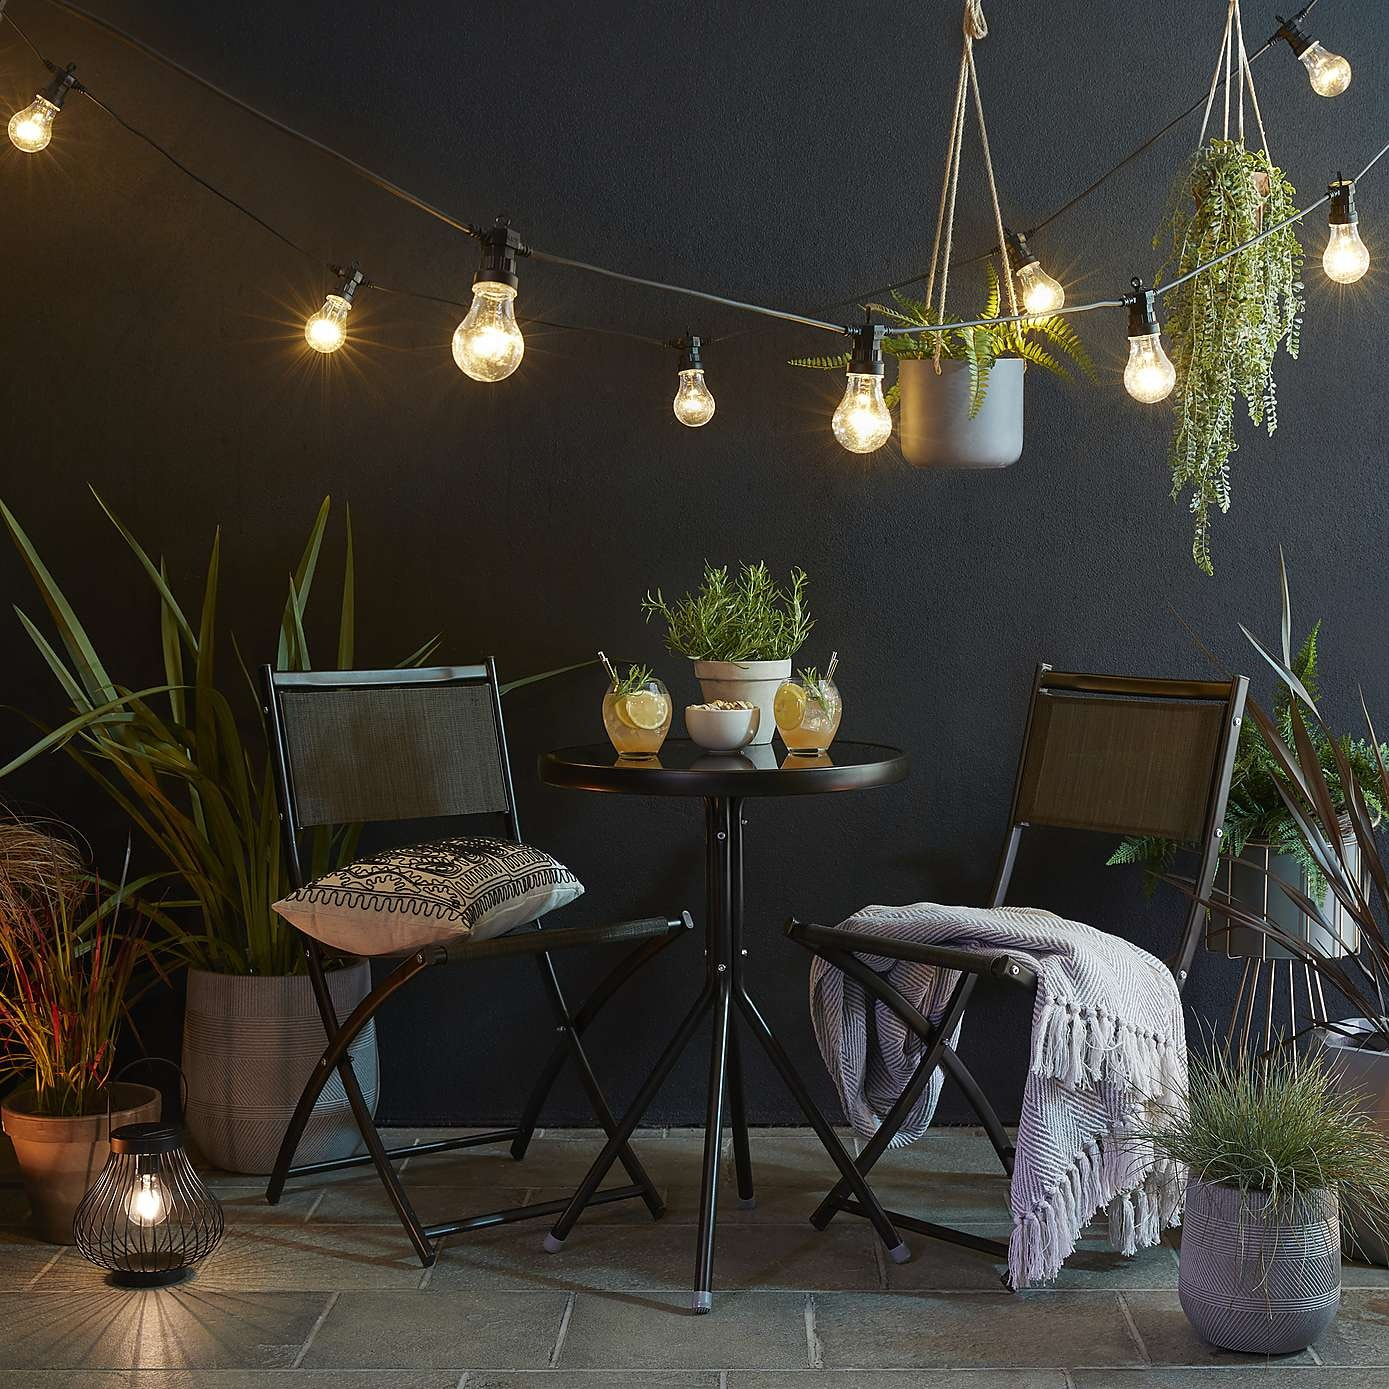 Garden Lights And Lanterns To Make Your Outdoor Space Magical